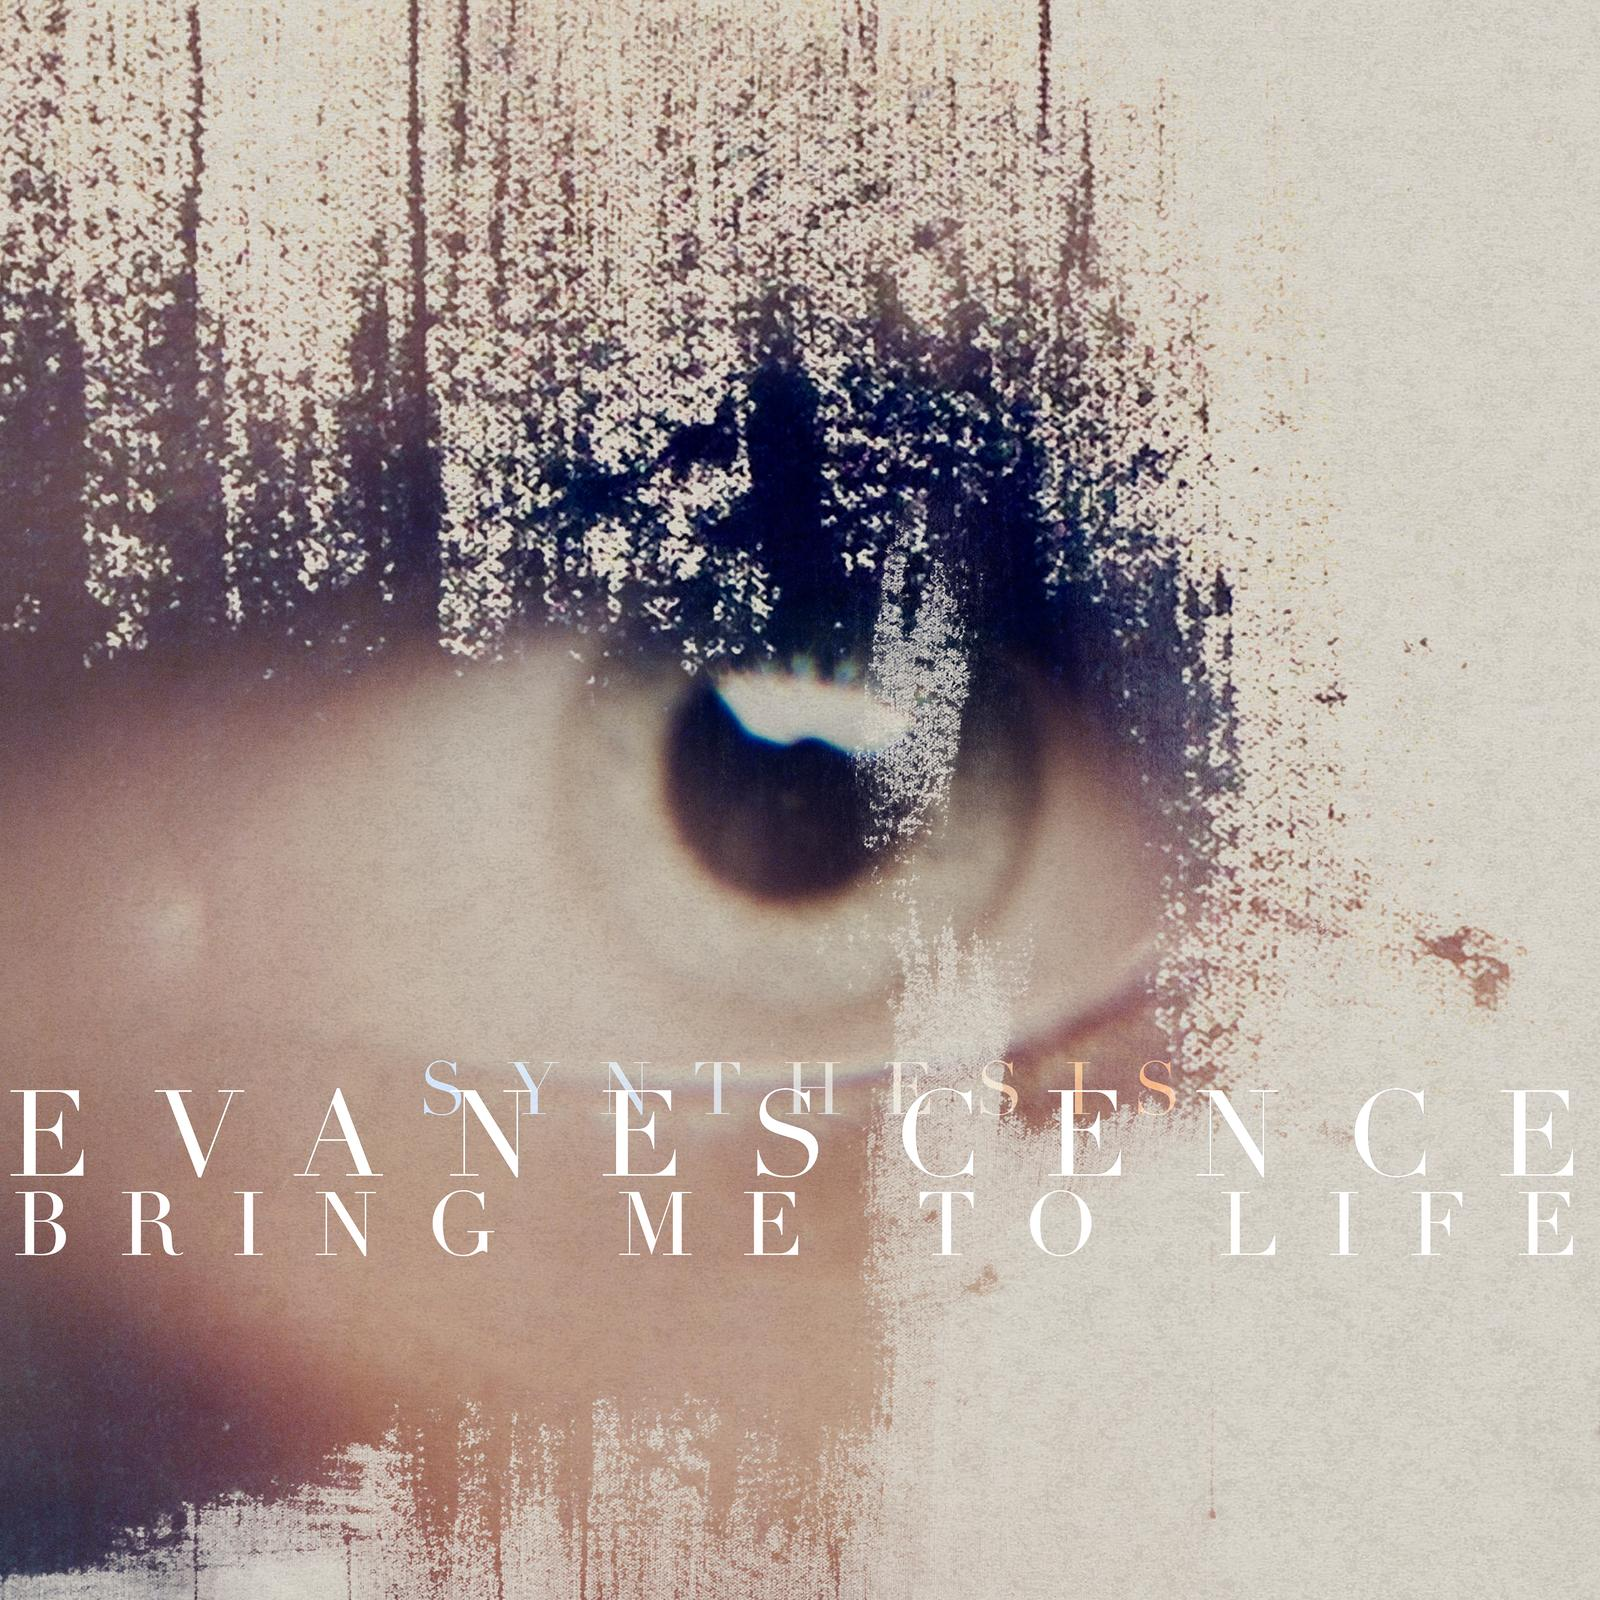 Bring me to life (Synthesis)